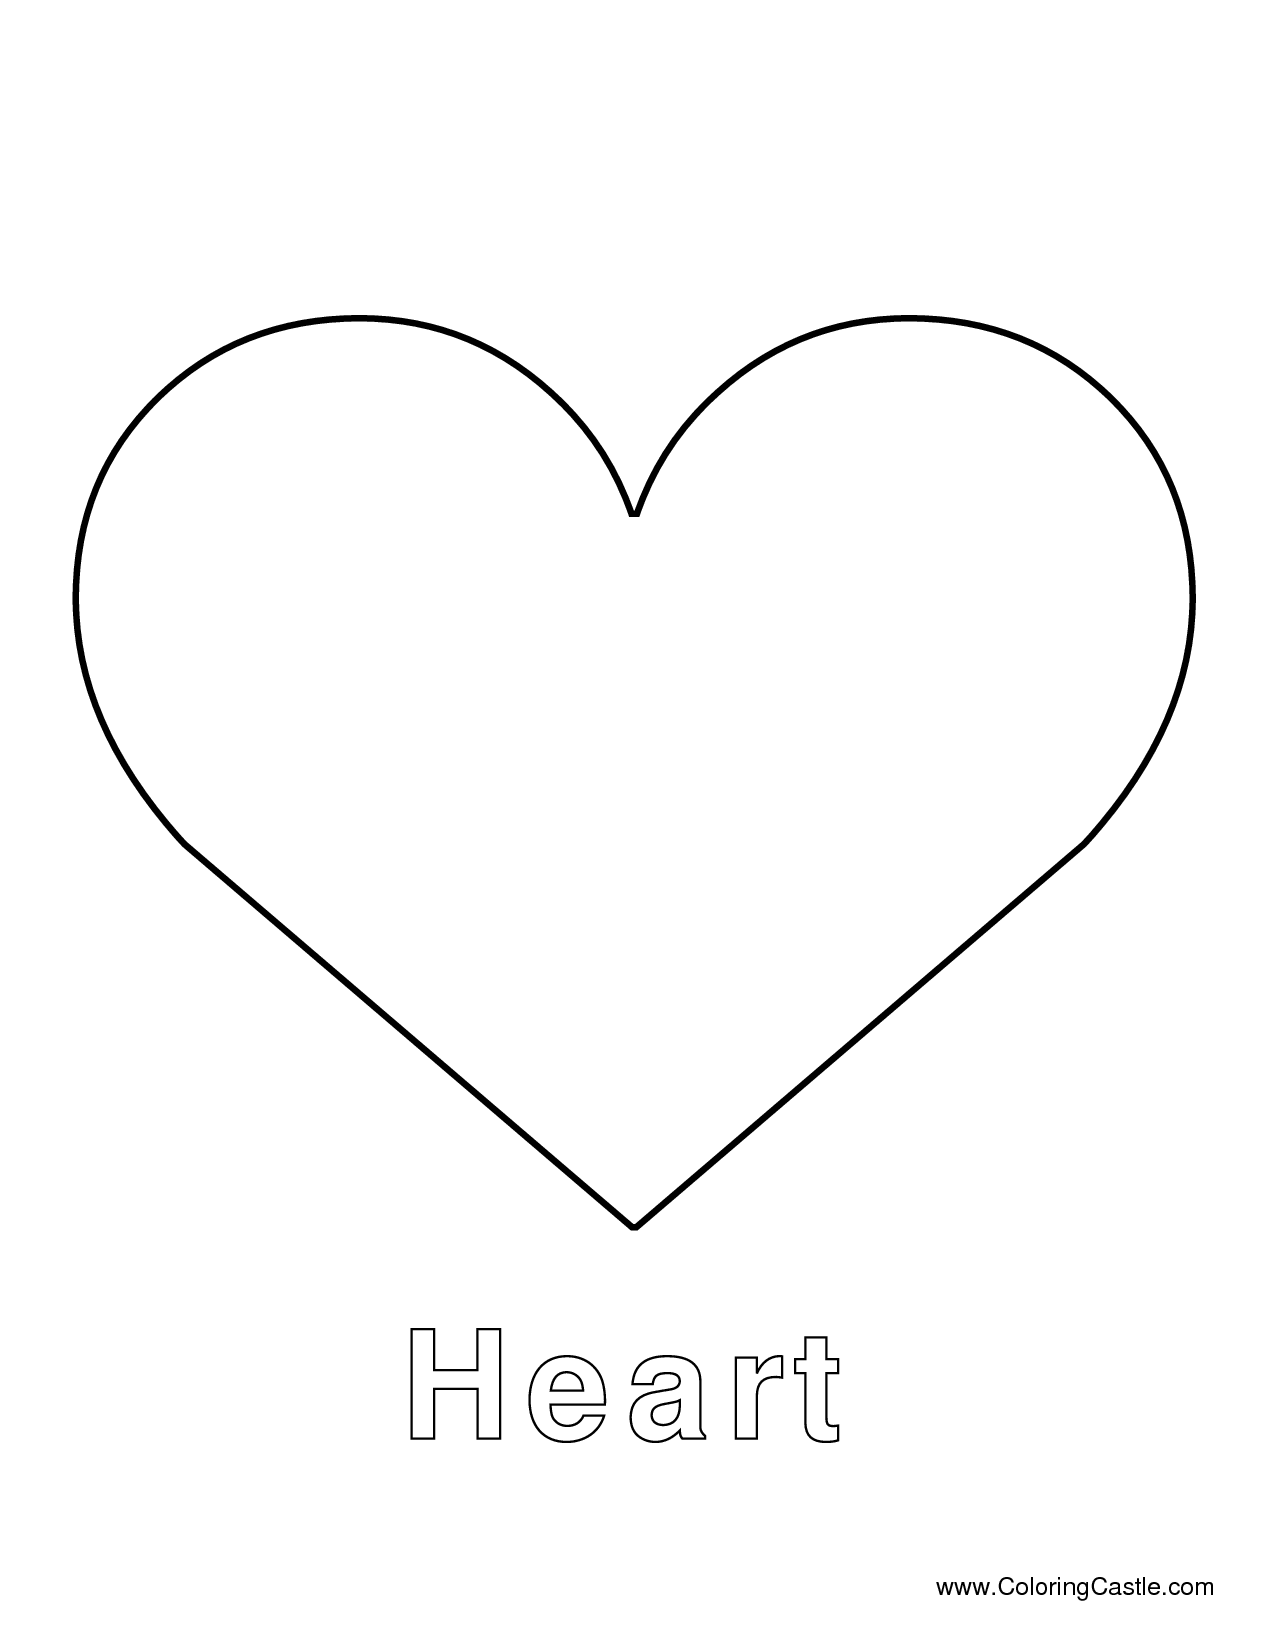 4 Images of Printable Heart Shape Template